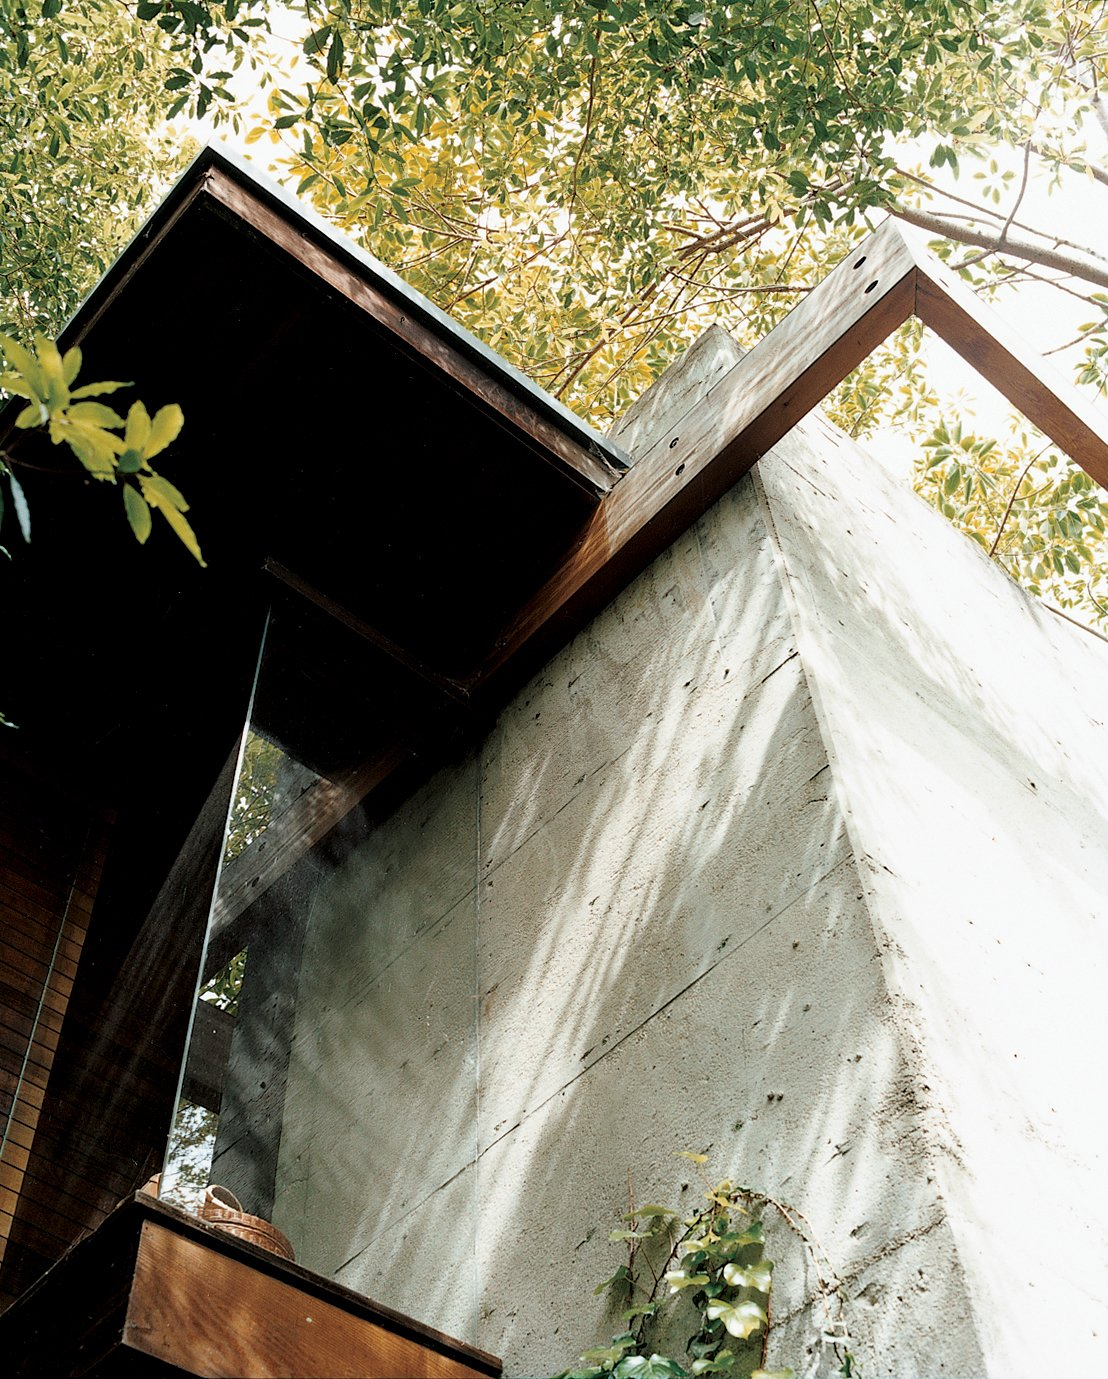 This detail shows the conjunction of concrete with wooden beams, where flush glass windows angle outward to the canopies of nearby trees. The detail also encapsulates Ray's vision for the house: a synthesis of the rational and the intuitive. Ray Kappe-Designed Multilevel House in Los Angeles - Photo 10 of 12